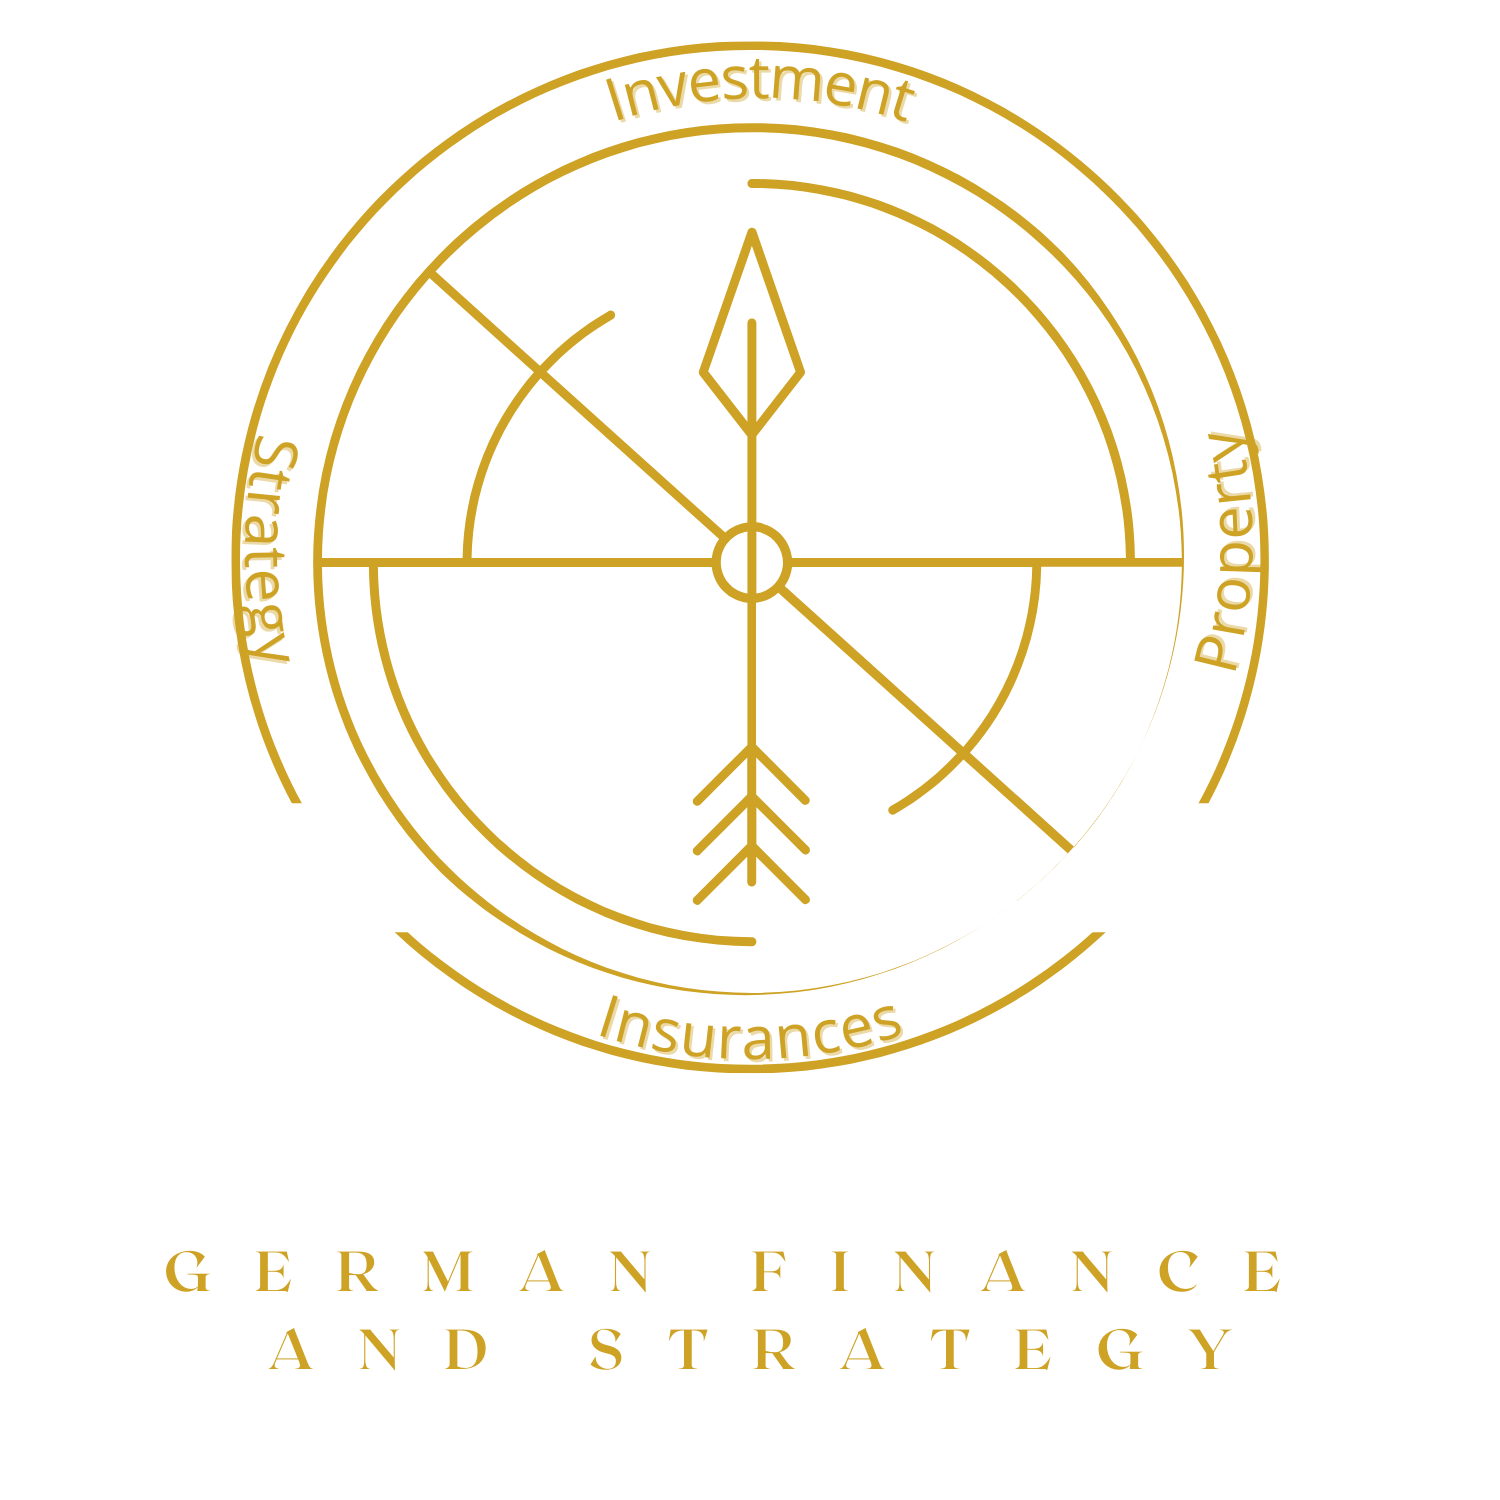 German Finance and Strategy (7)